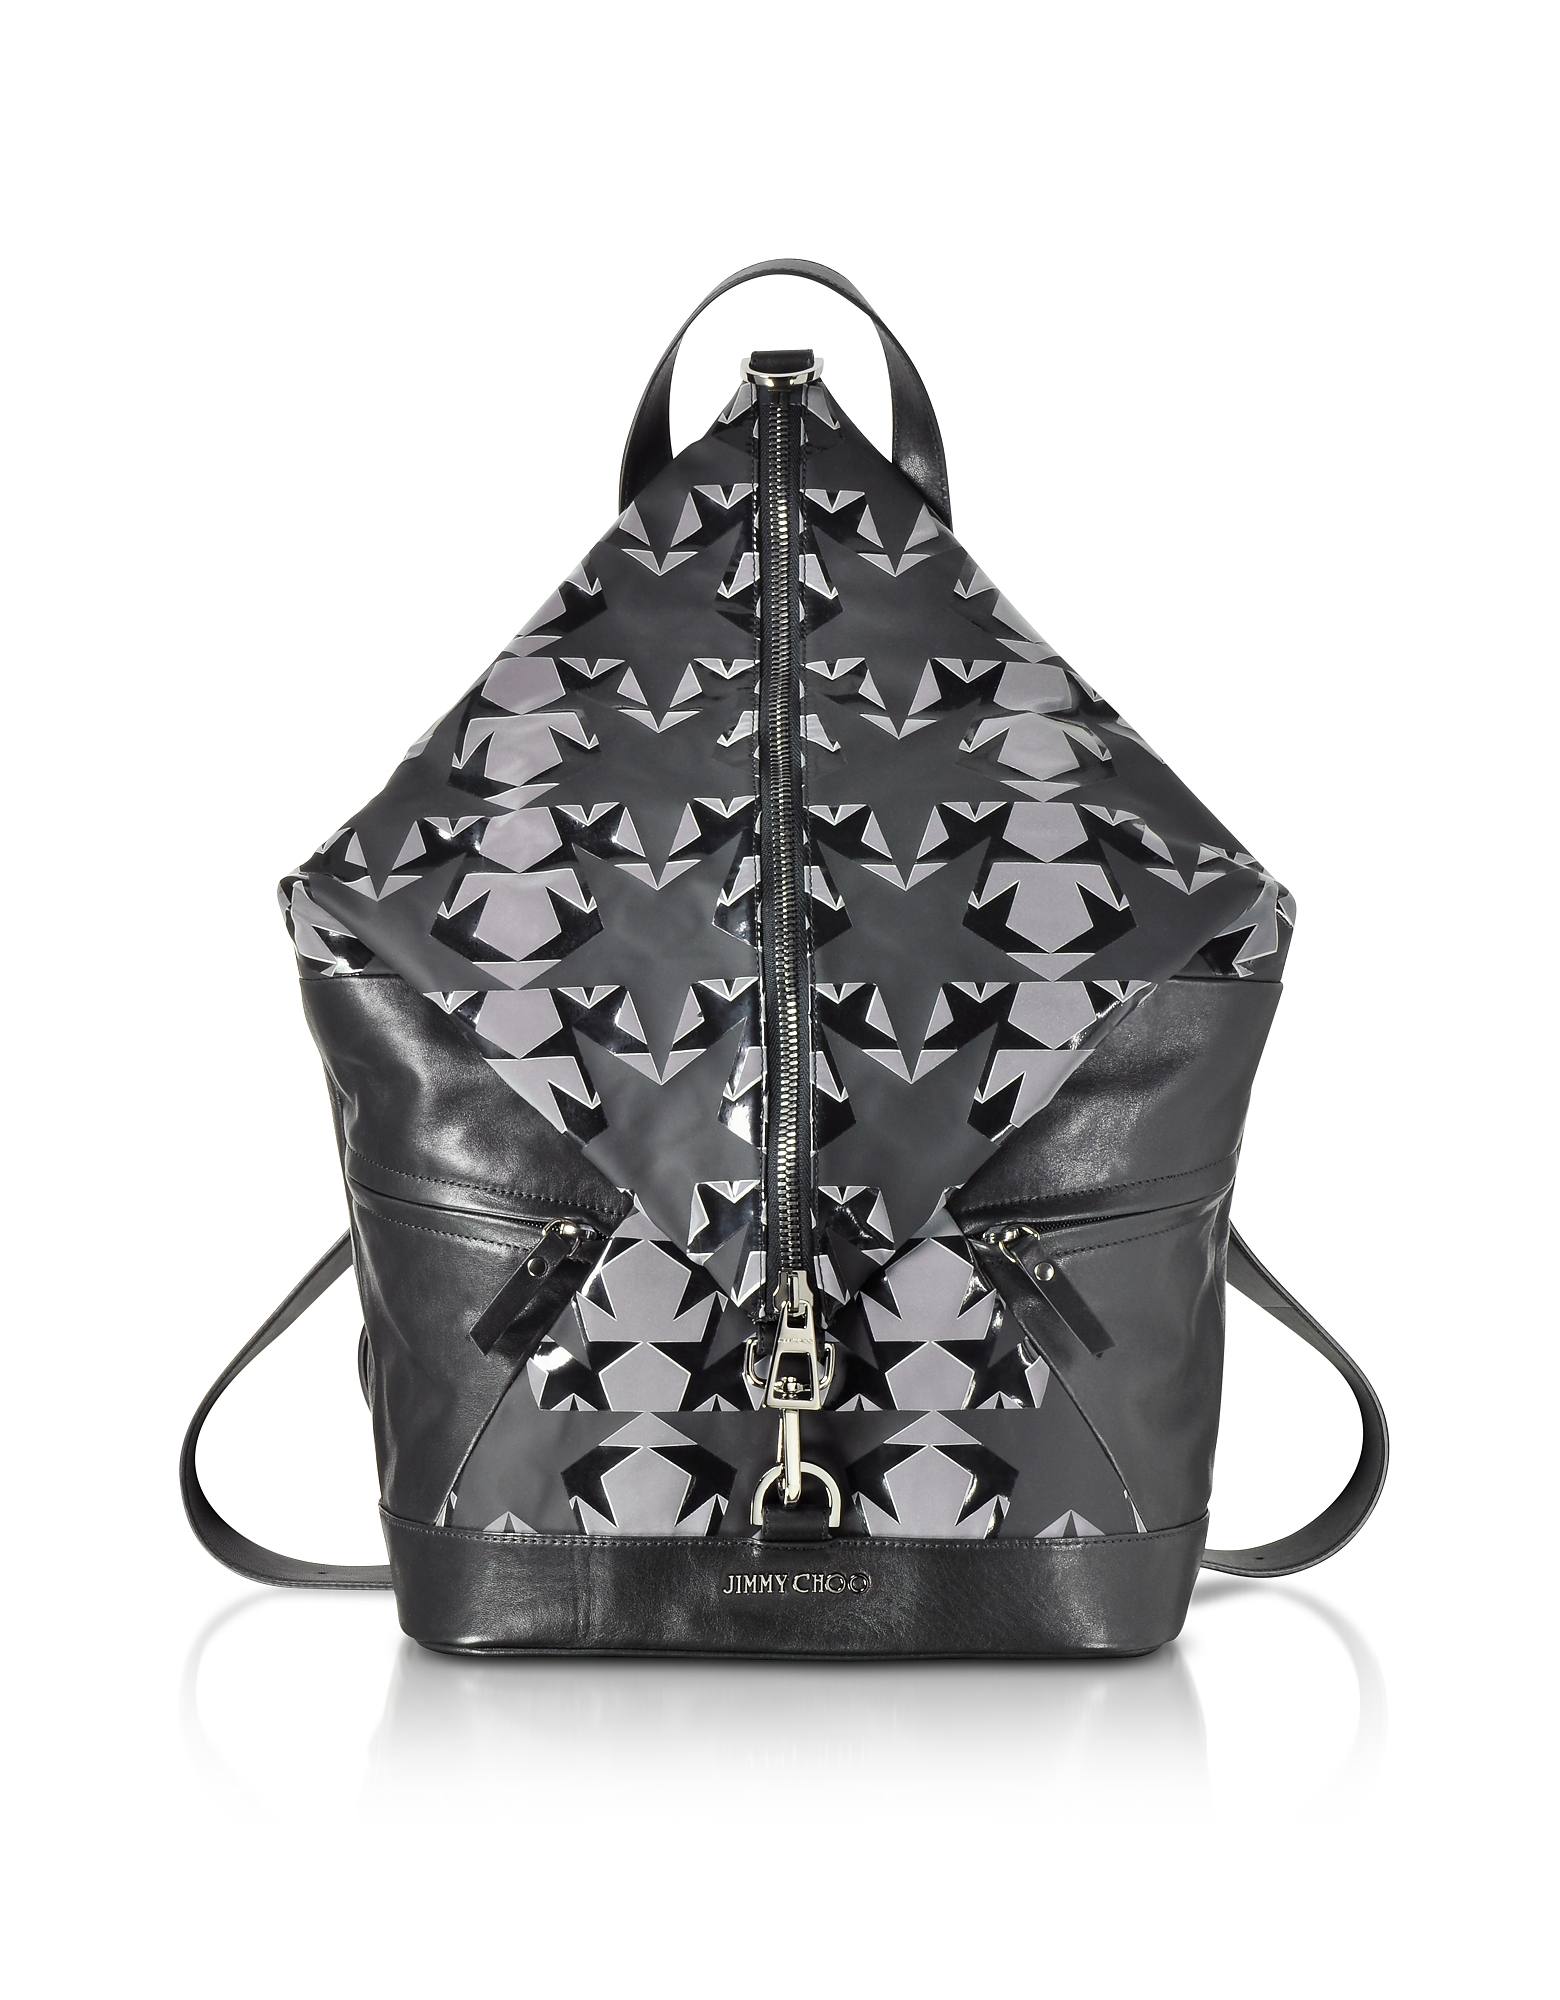 Jimmy Choo Handbags, Fitzroy GNY Graphic Stars Print Fabric Backpack